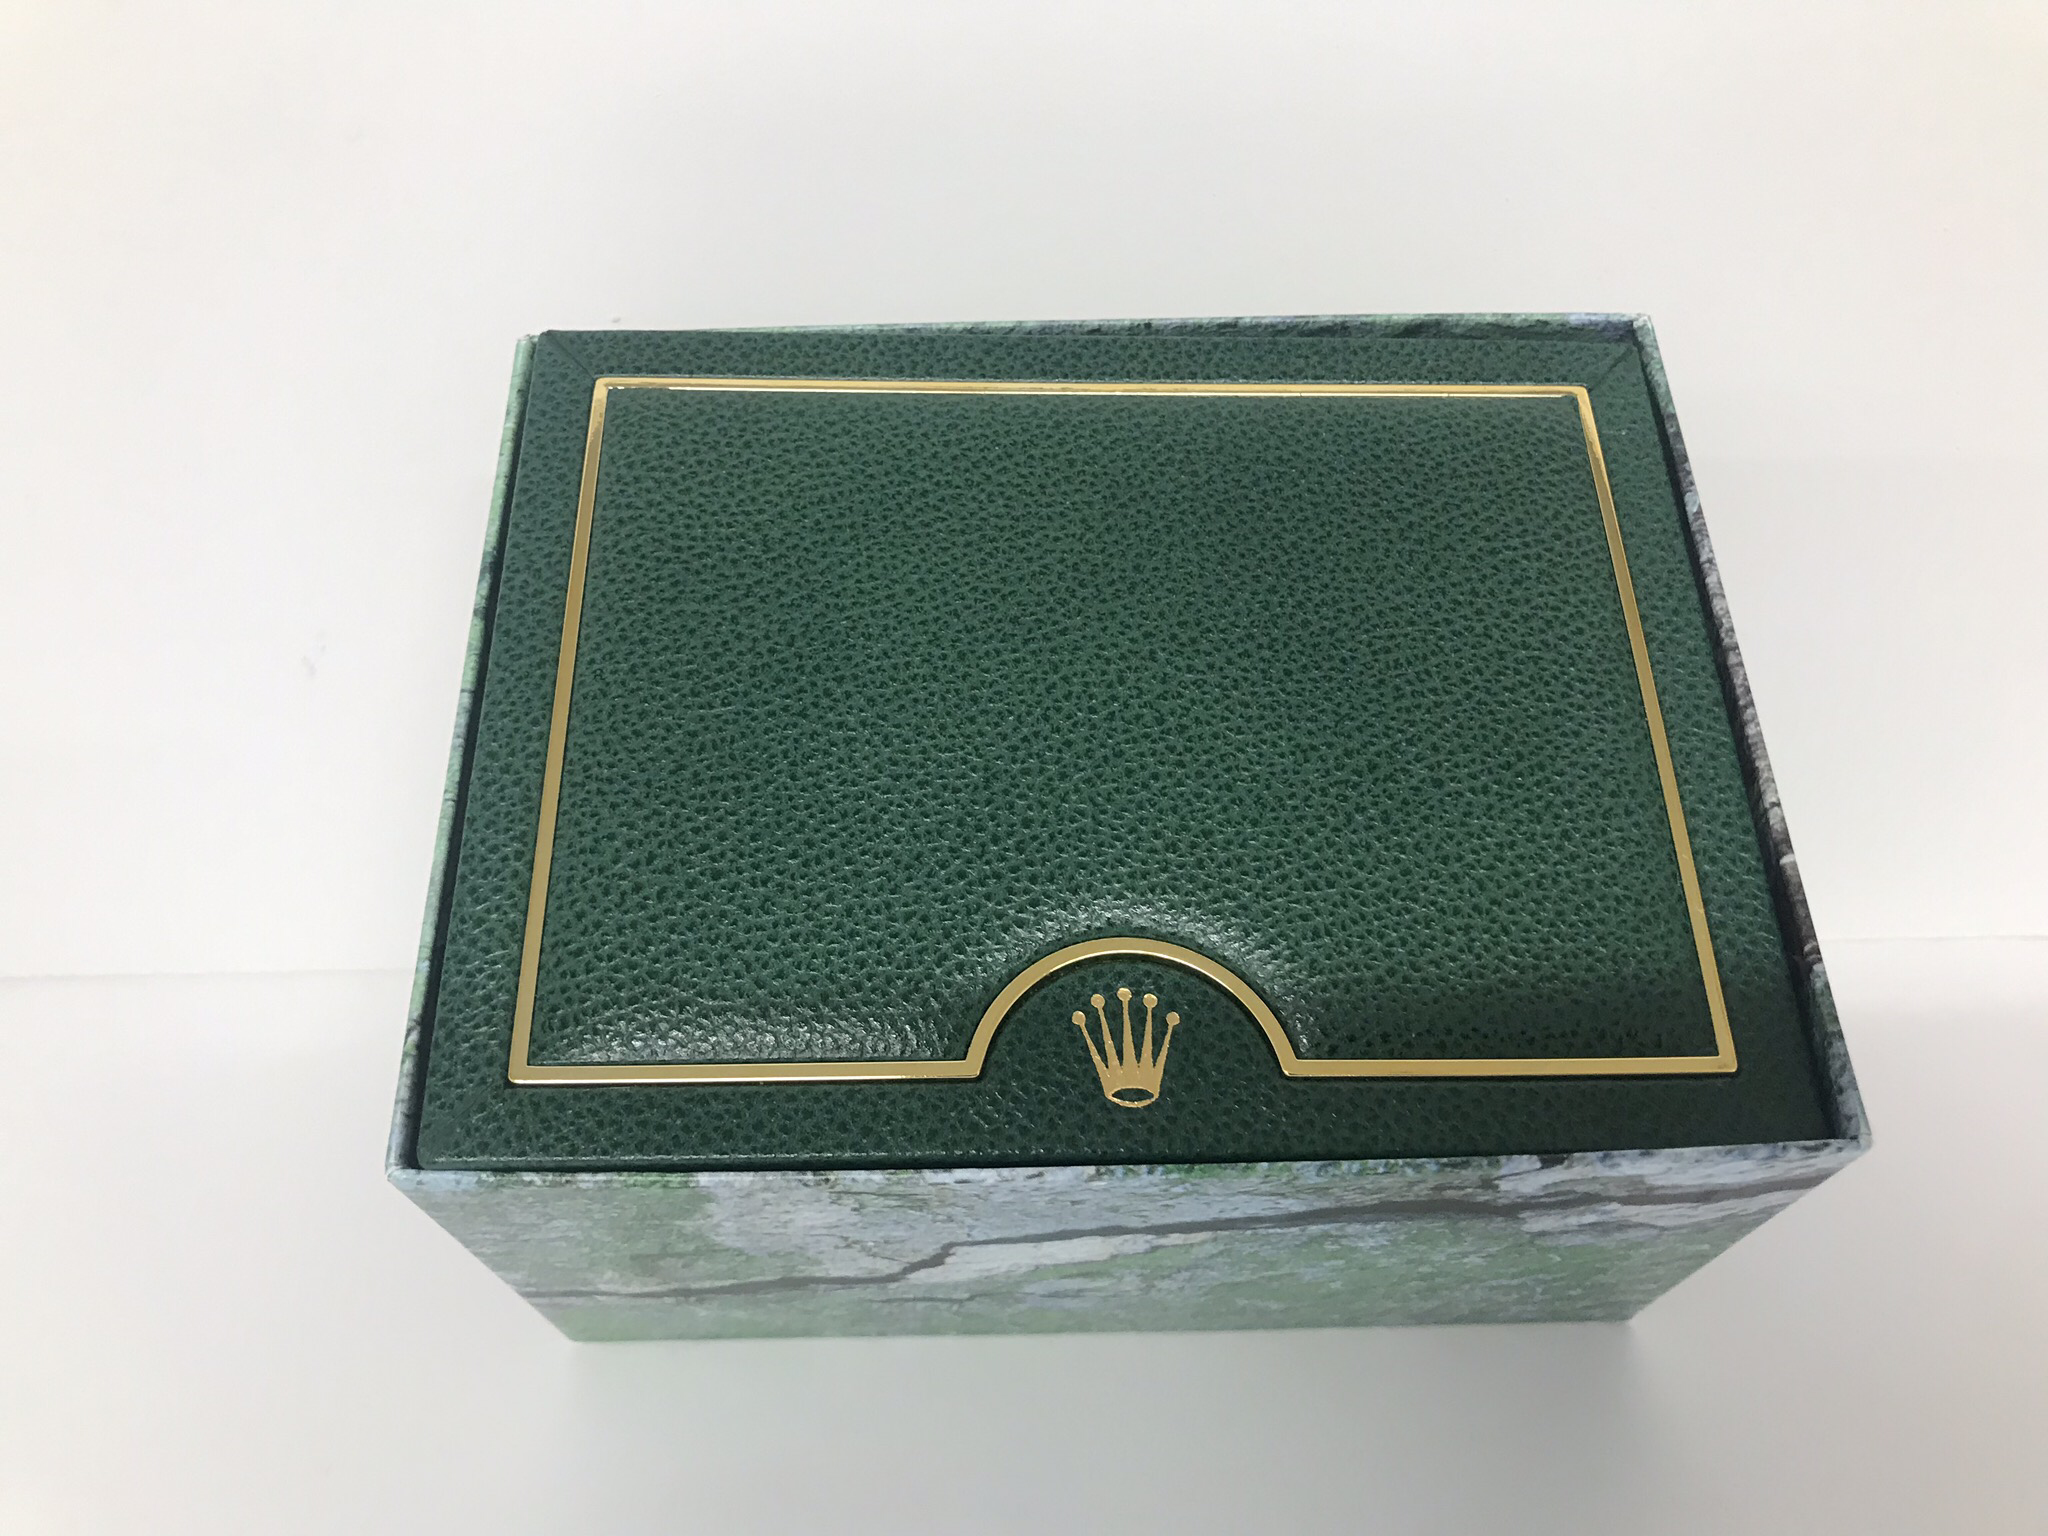 -Sold- 8/5/19 Rolex Submariner 16610LV Flat 4 Anniversary F Serial Number